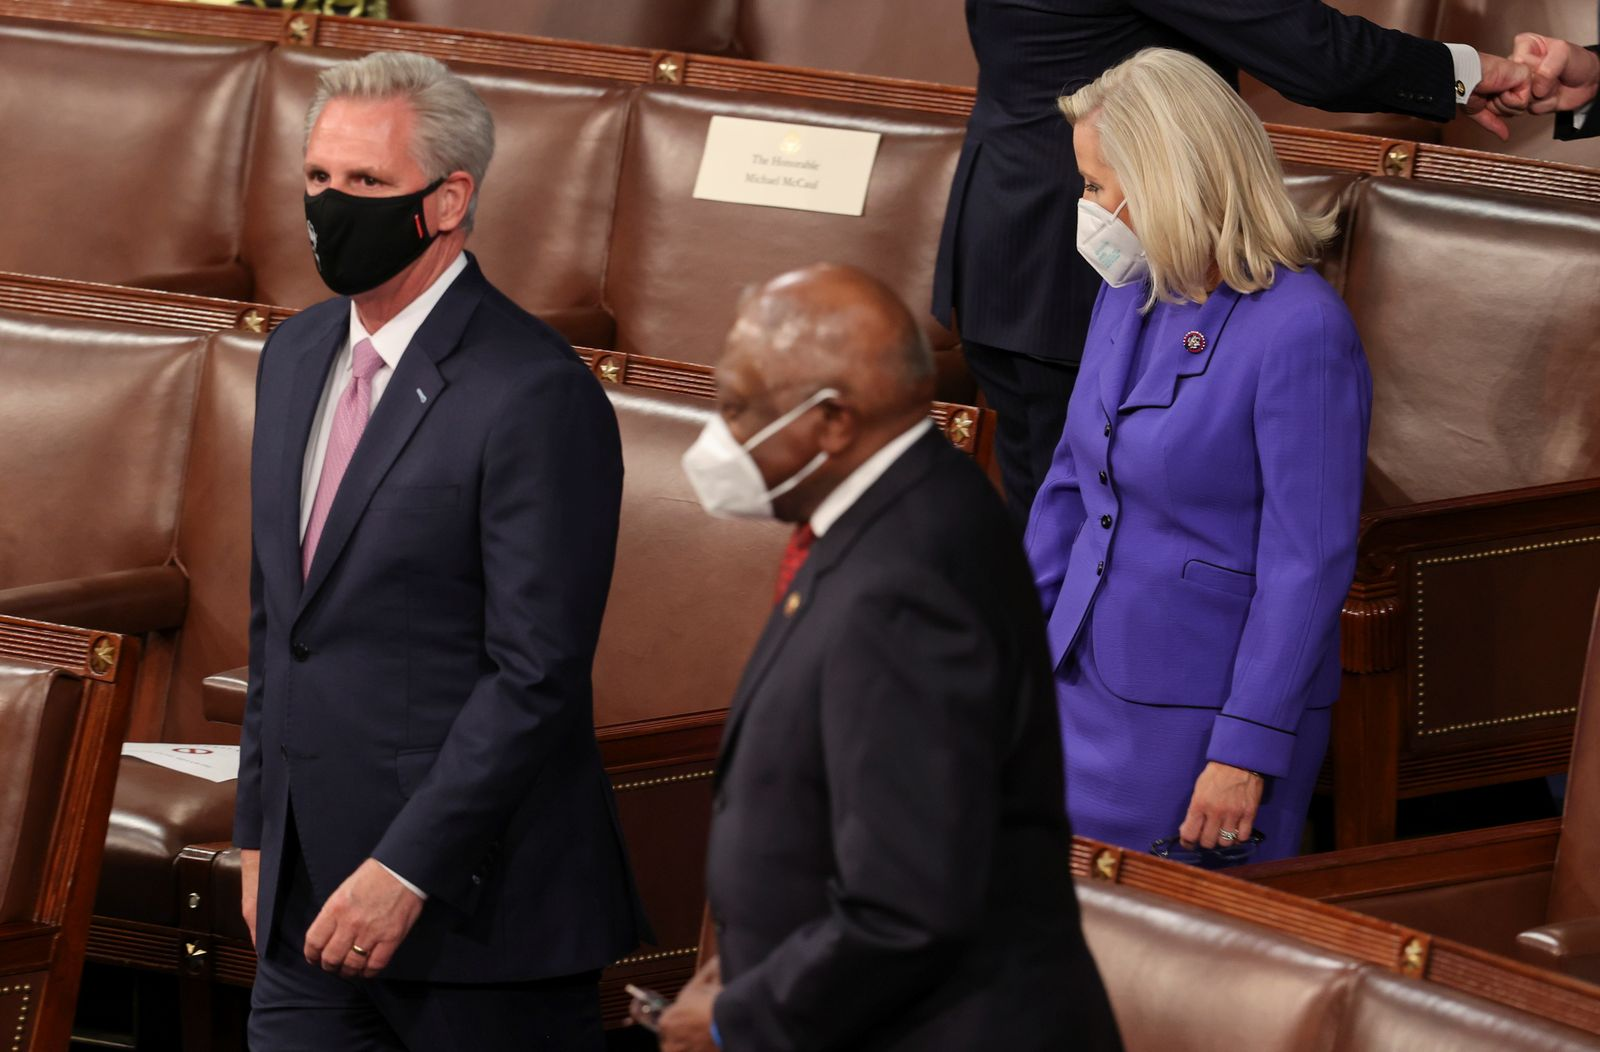 U.S. House Minority Leader McCarthy and Republican Conference Chairperson Cheney arrive before the start of President Joe Biden's first address to a joint session of the U.S. Congress in Washington